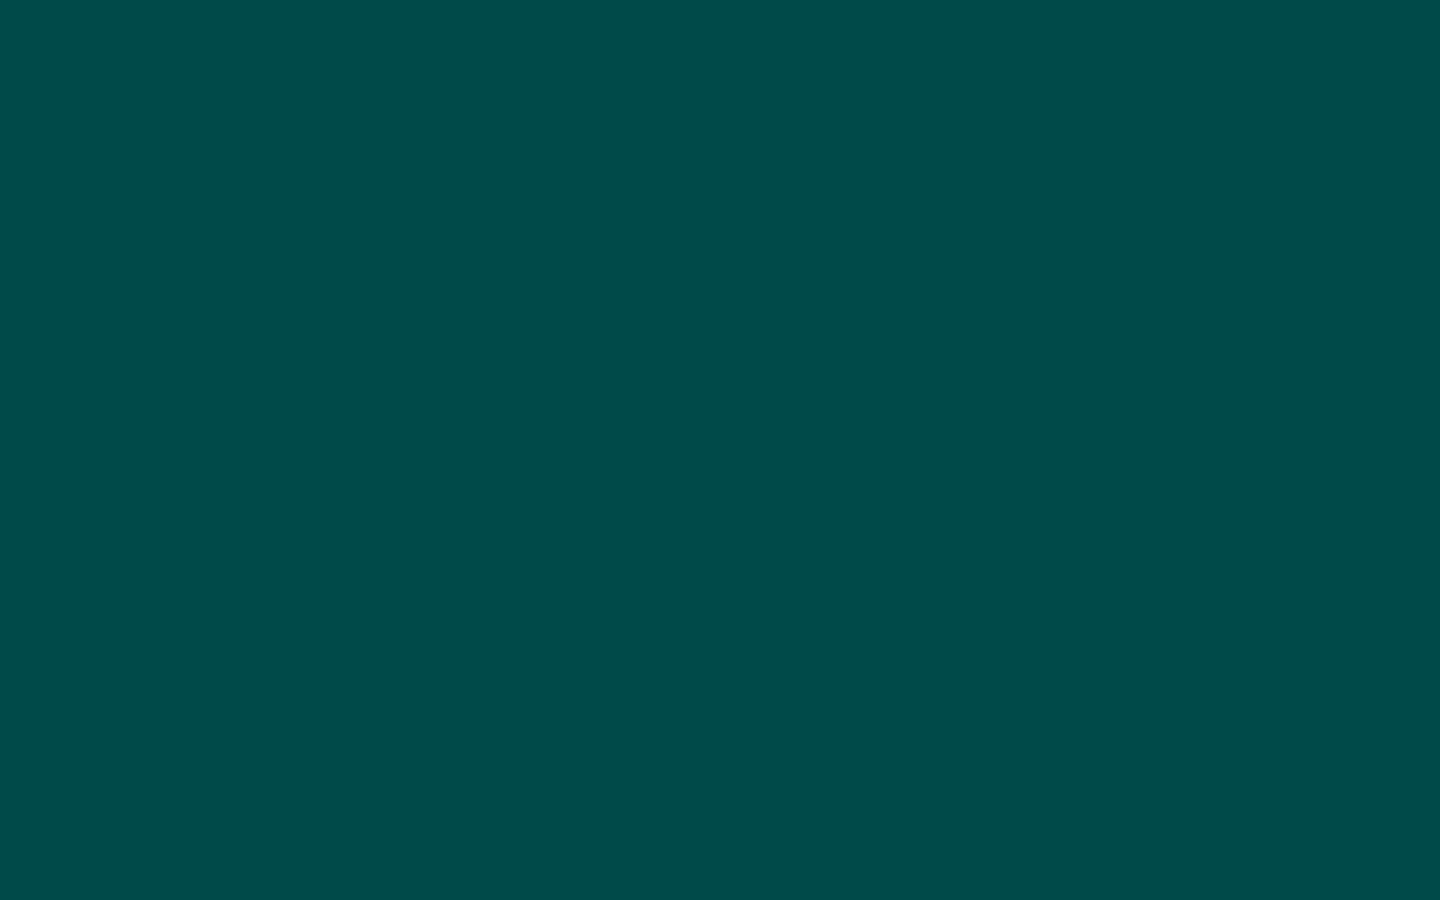 1440x900 Deep Jungle Green Solid Color Background